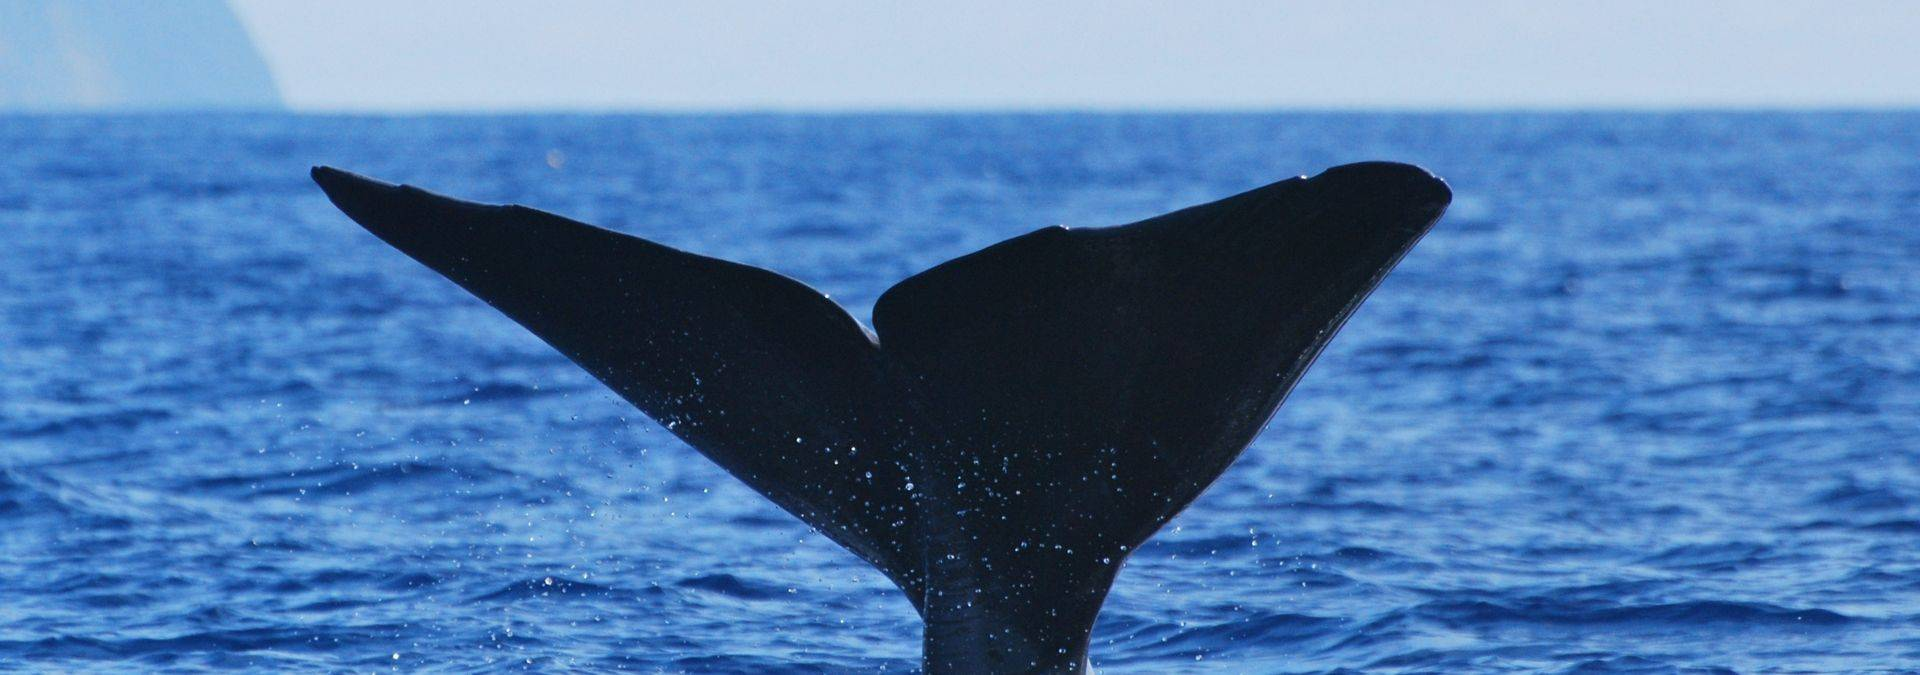 Whale watching 4, credit Futurismo Azores Adventures.JPG